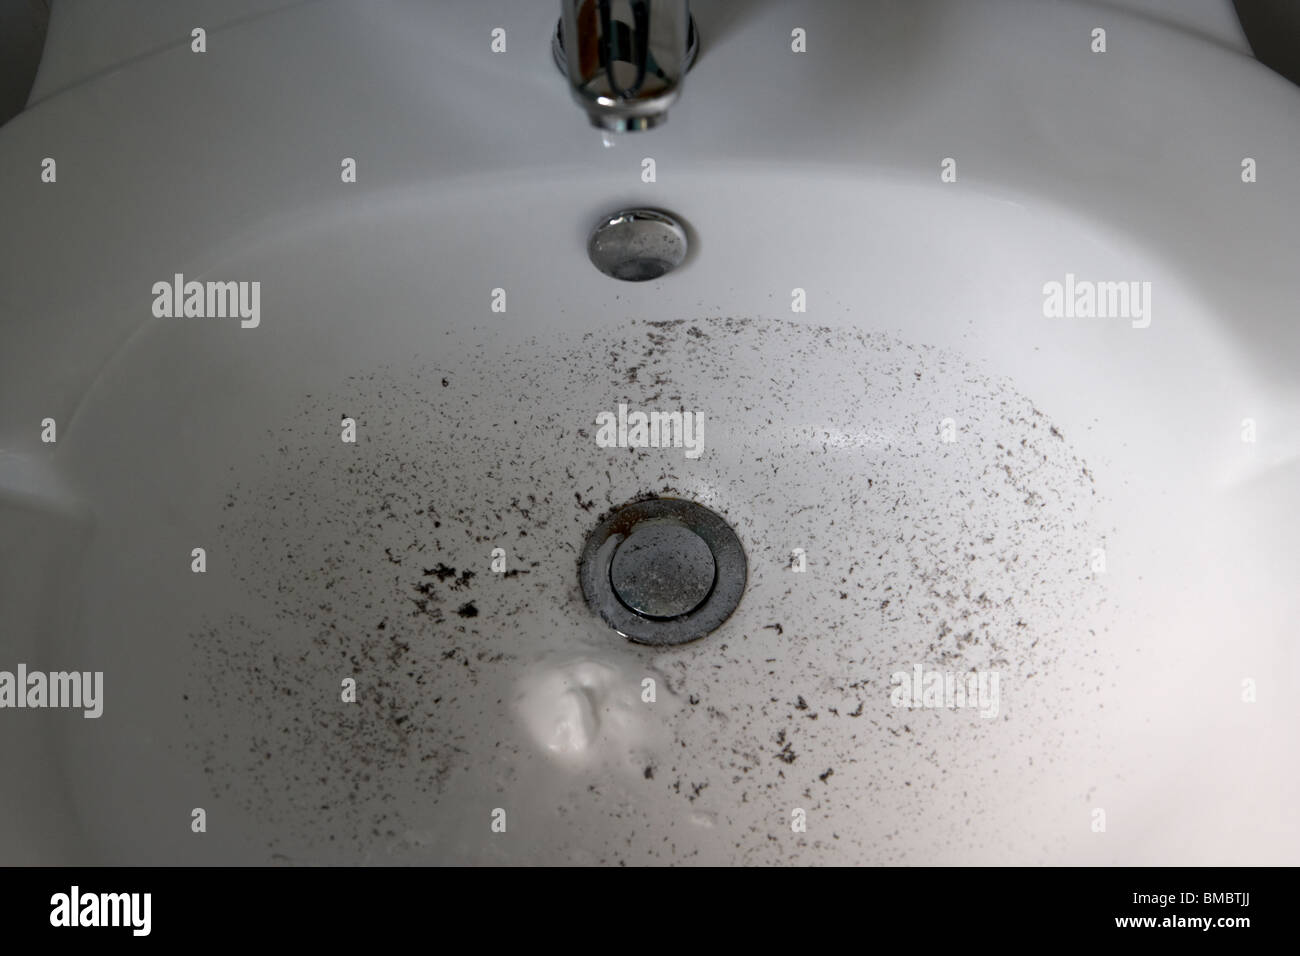 dirty bathroom sink with remnants of mans shaving after a weekends growth - Stock Image